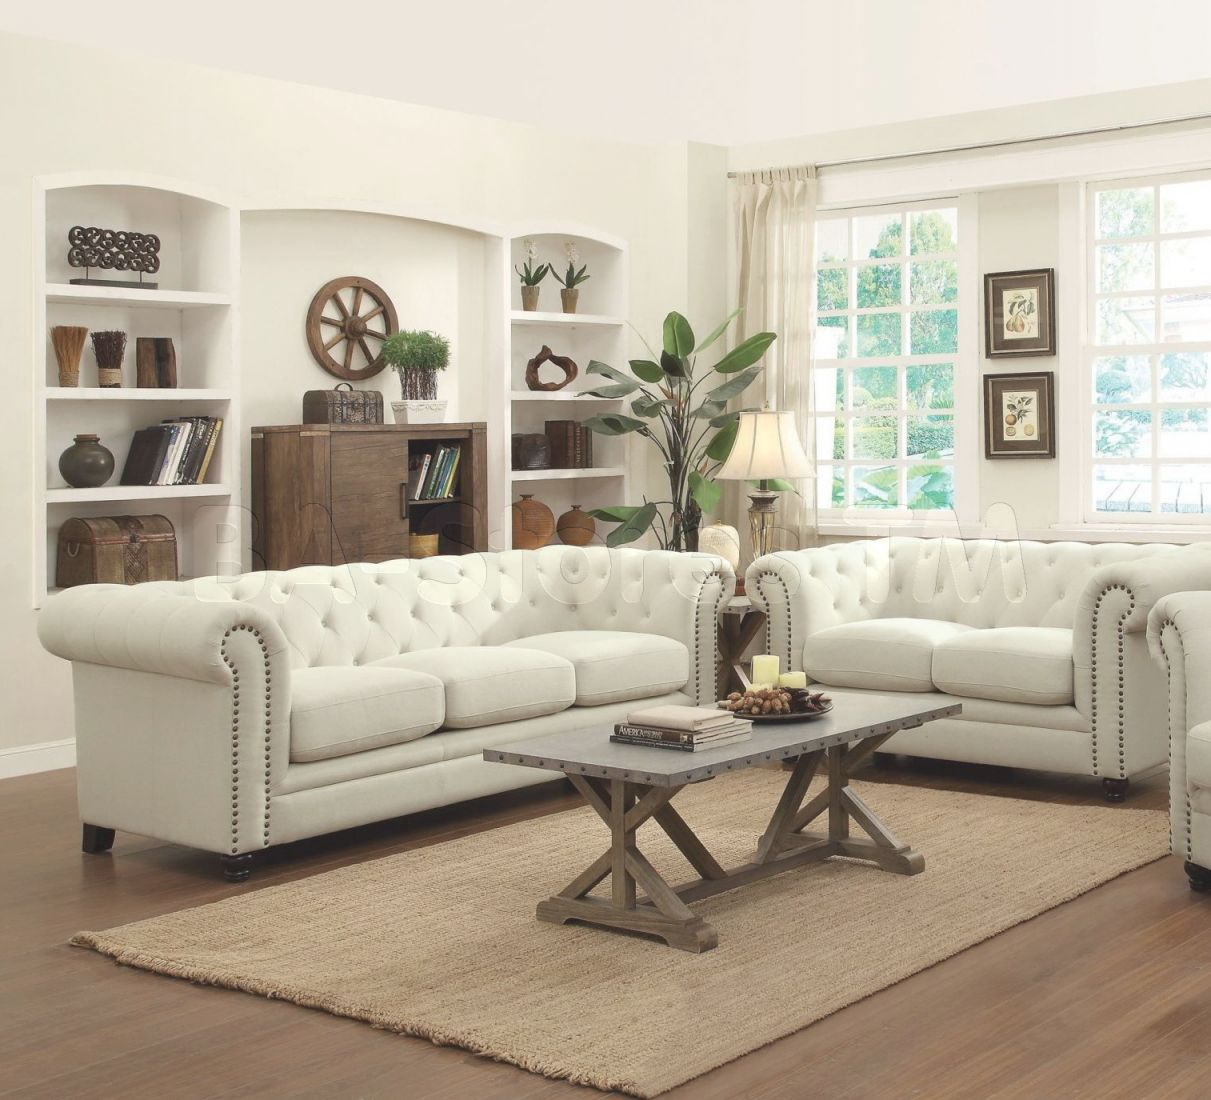 Coaster Roy 2Pc Oatmeal Sofa & Loveseat Set with Tufted Living Room Furniture